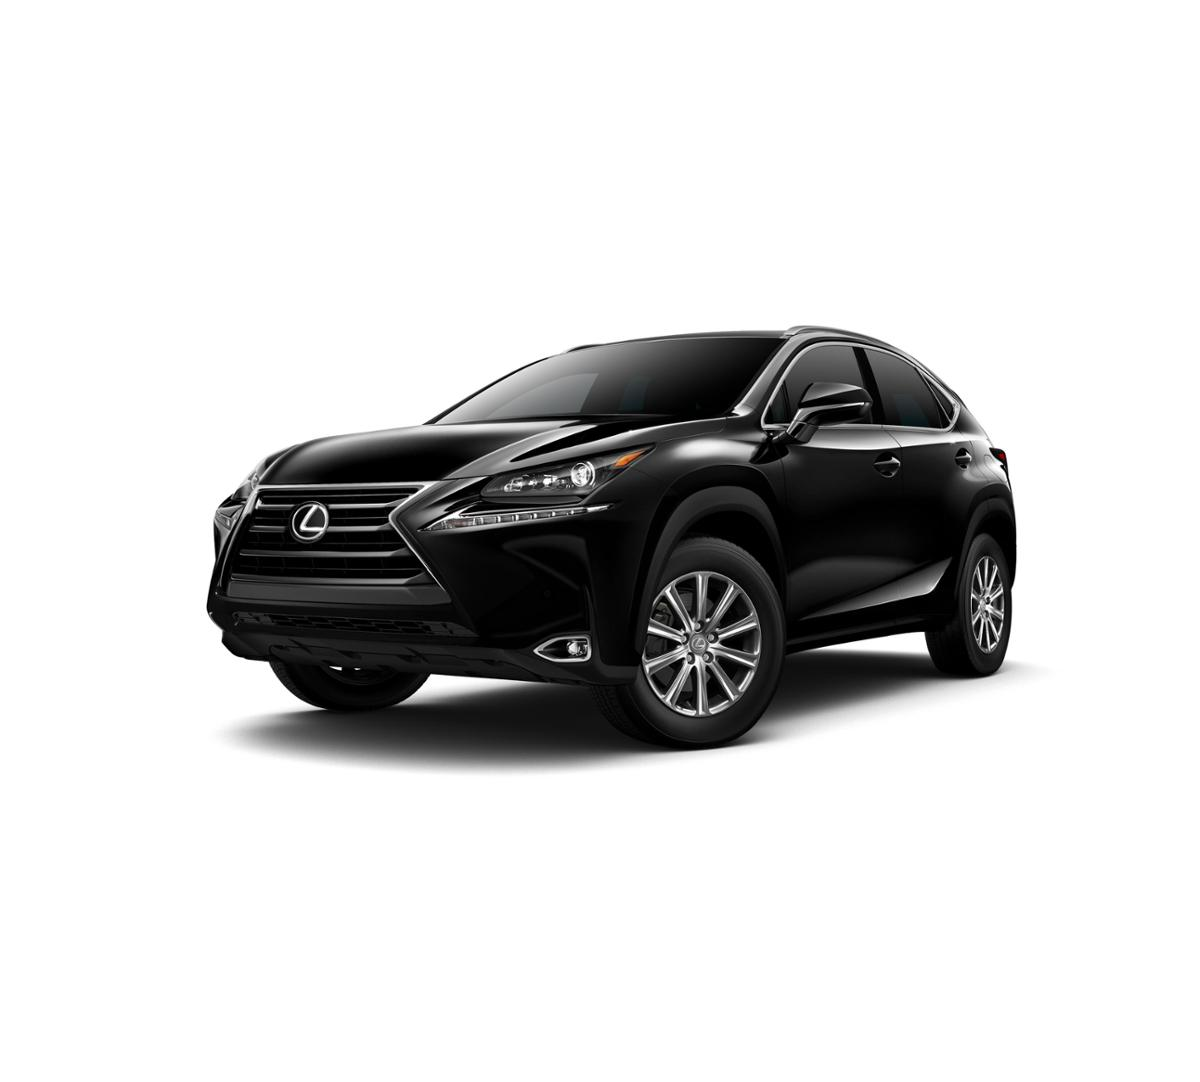 Lexus Of Memphis Used Cars: 2017 Lexus NX Turbo